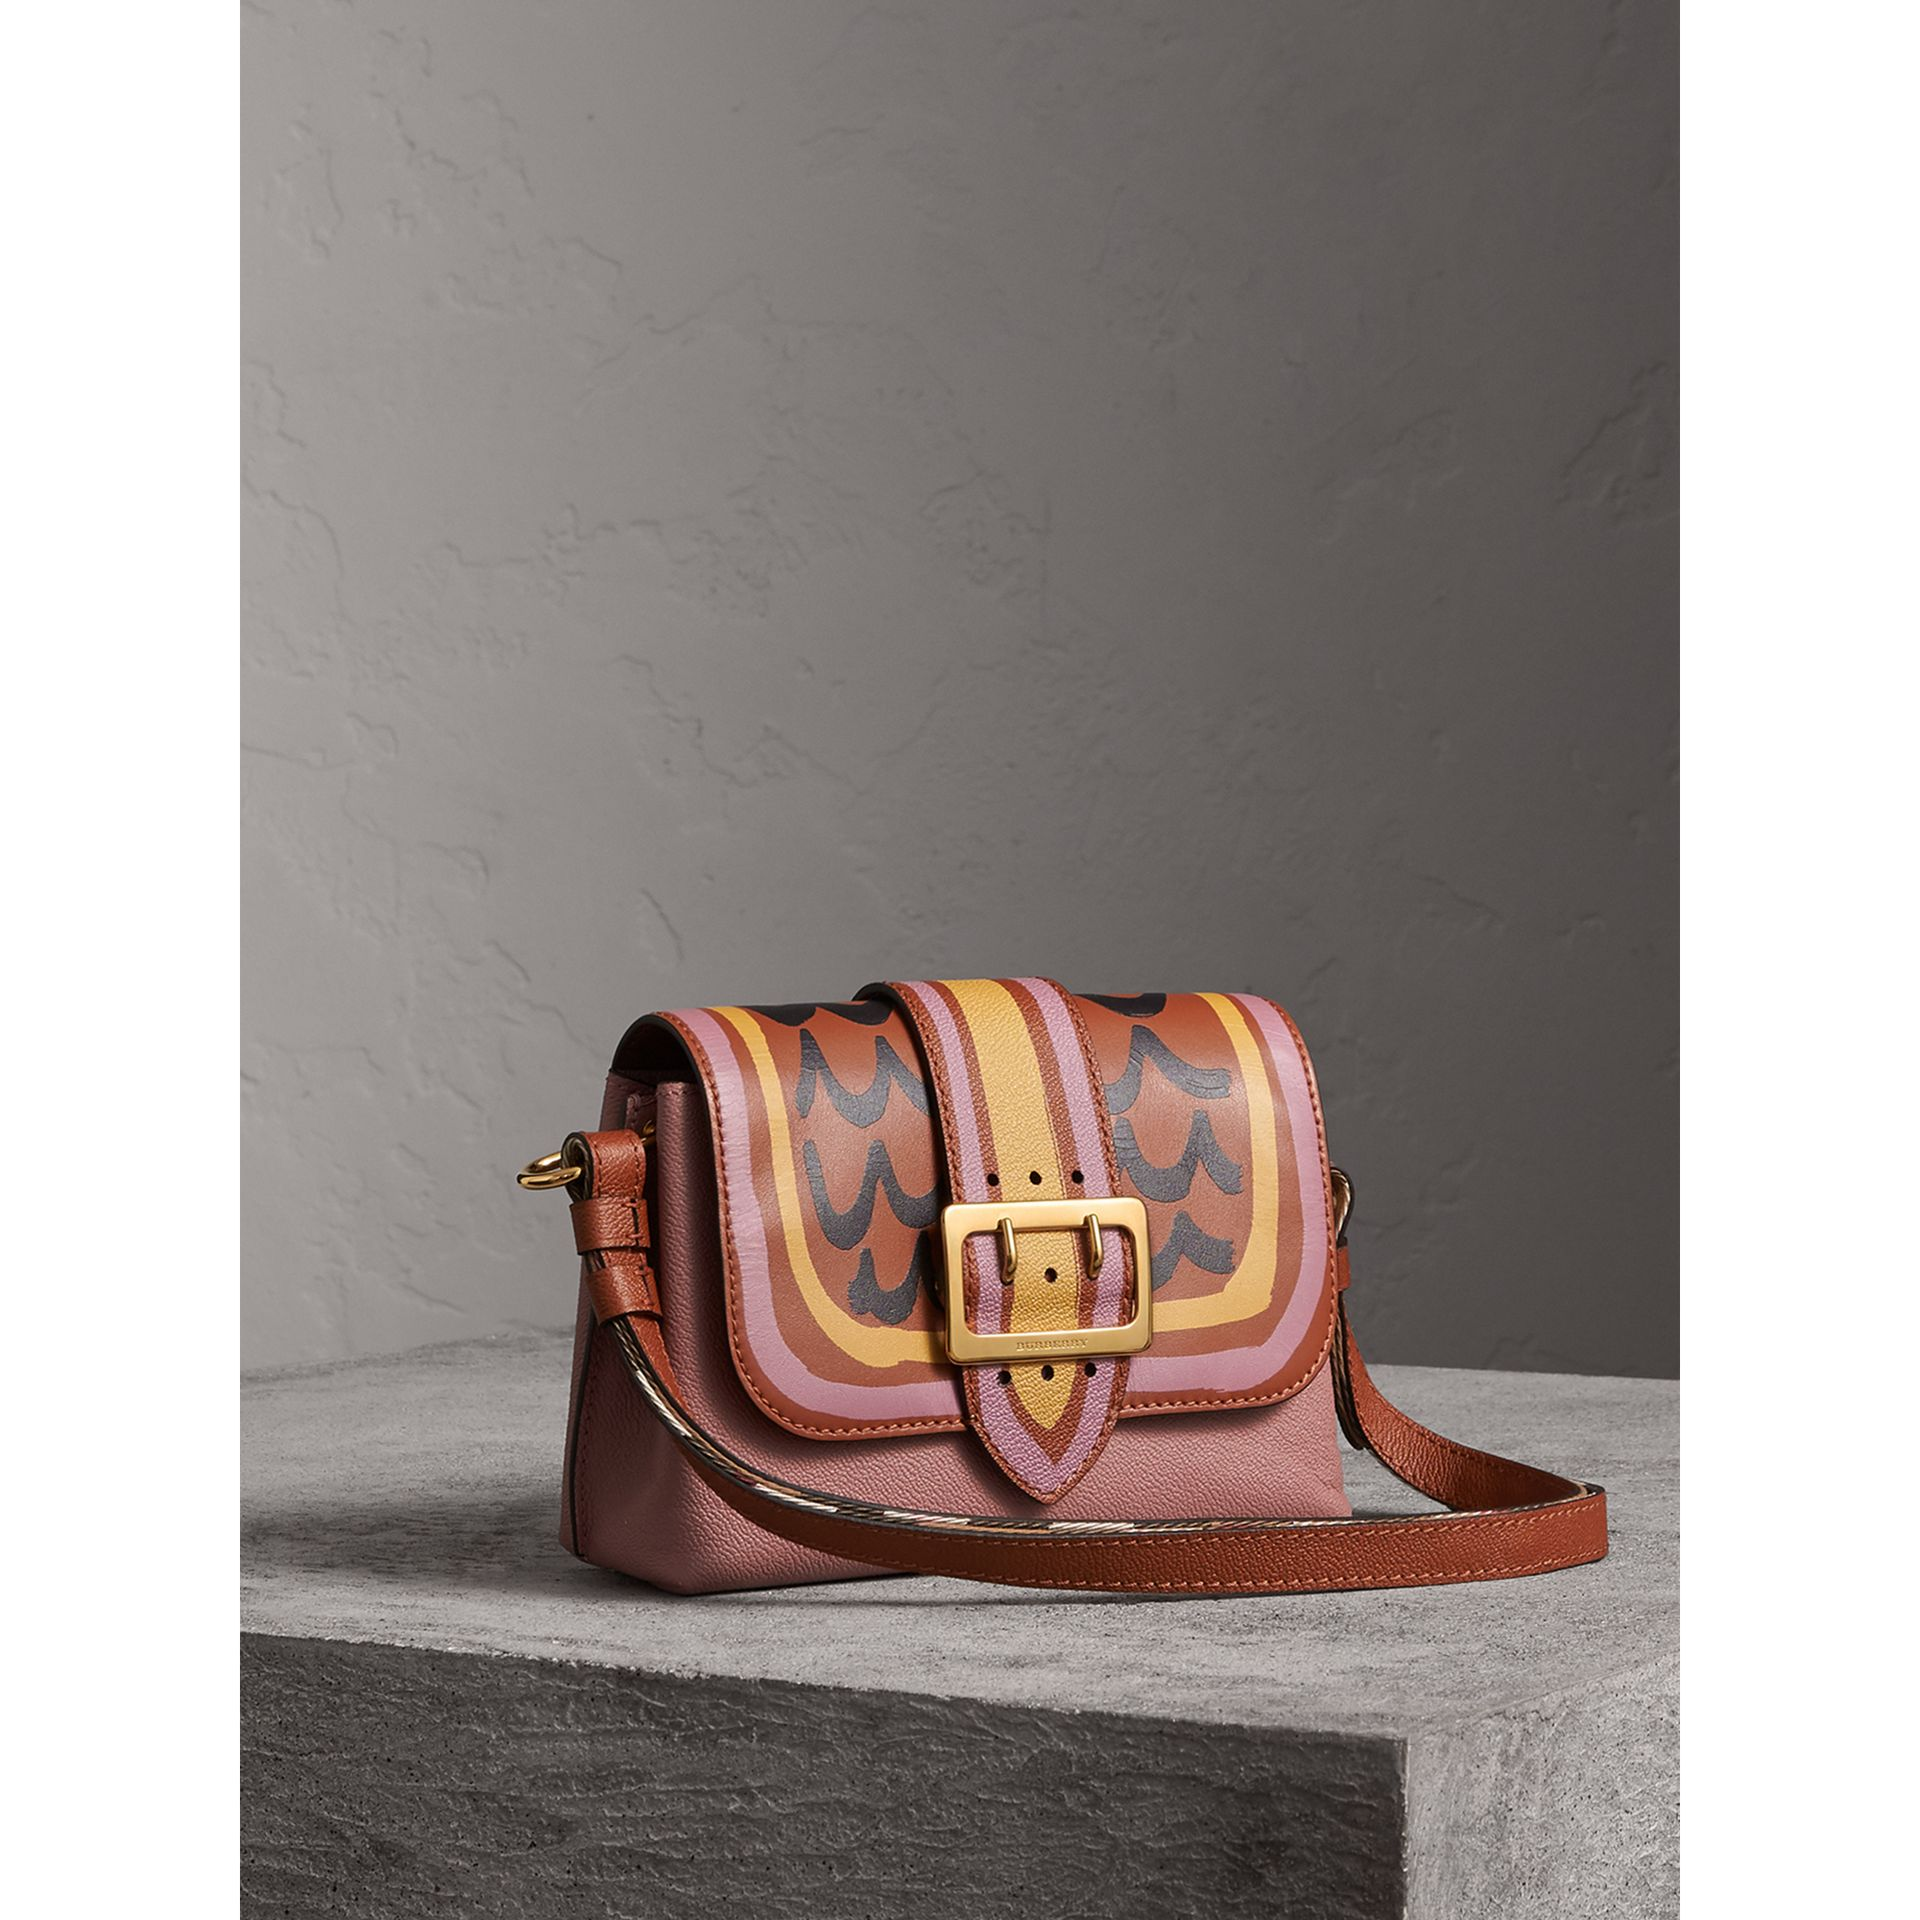 The Buckle Crossbody Bag in Trompe L'oeil Leather in Dusty Pink/bright Toffee - Women | Burberry - gallery image 6